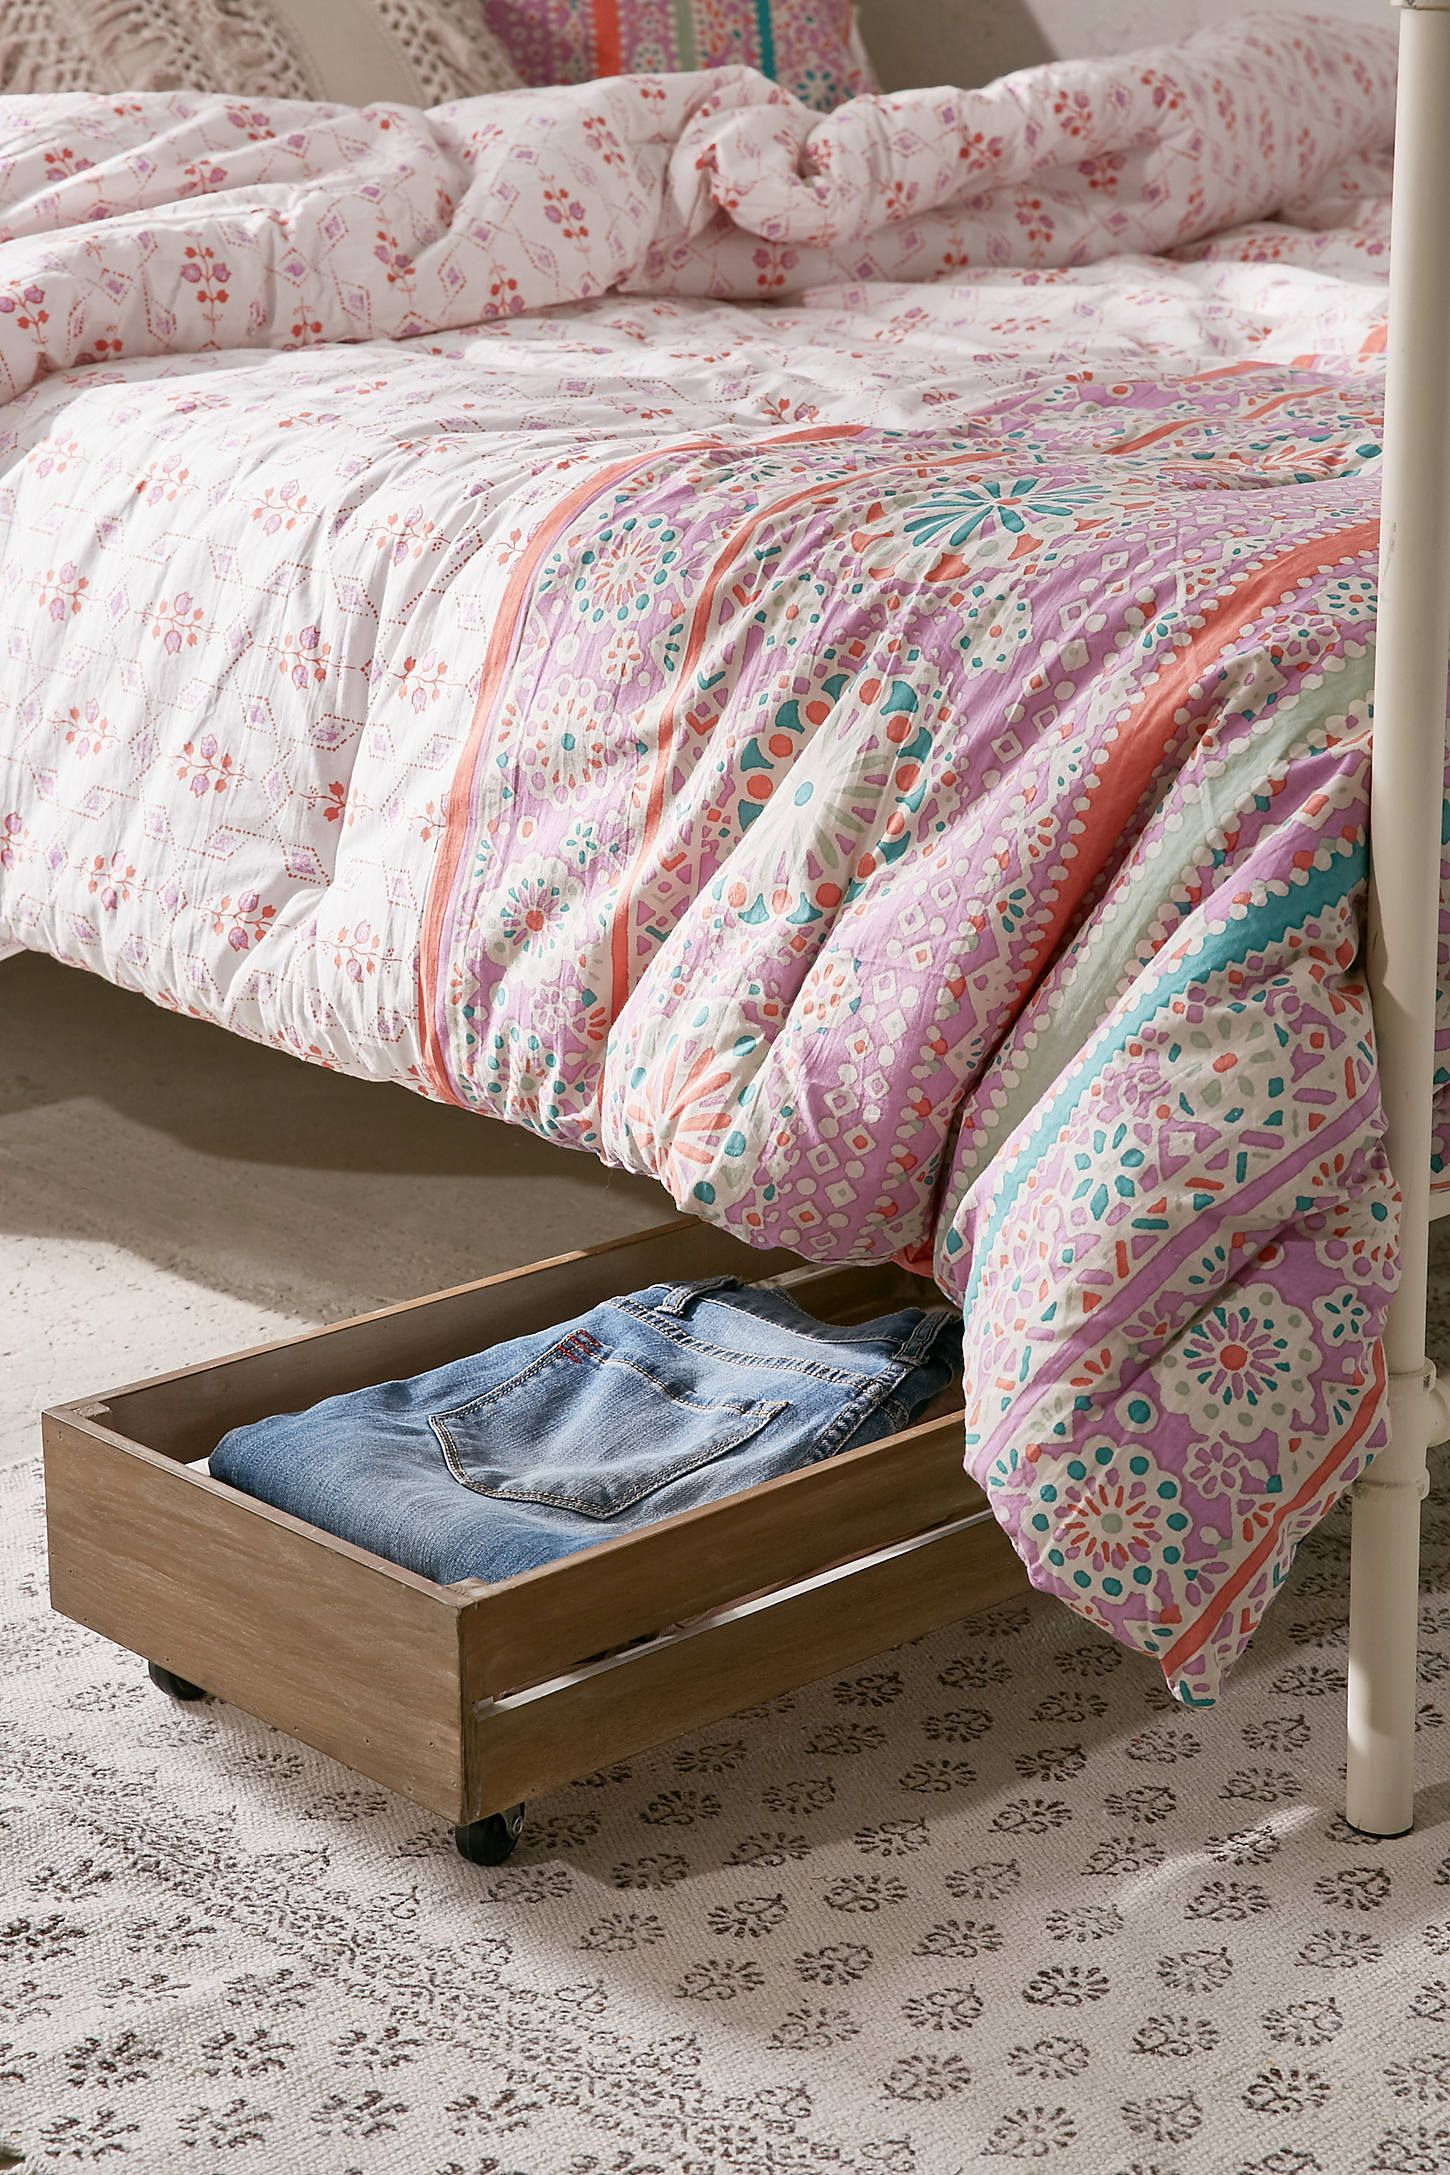 How To Organize Your Room 28 Best Bedroom Organization Ideas Rh Womansday Com Build Own Online